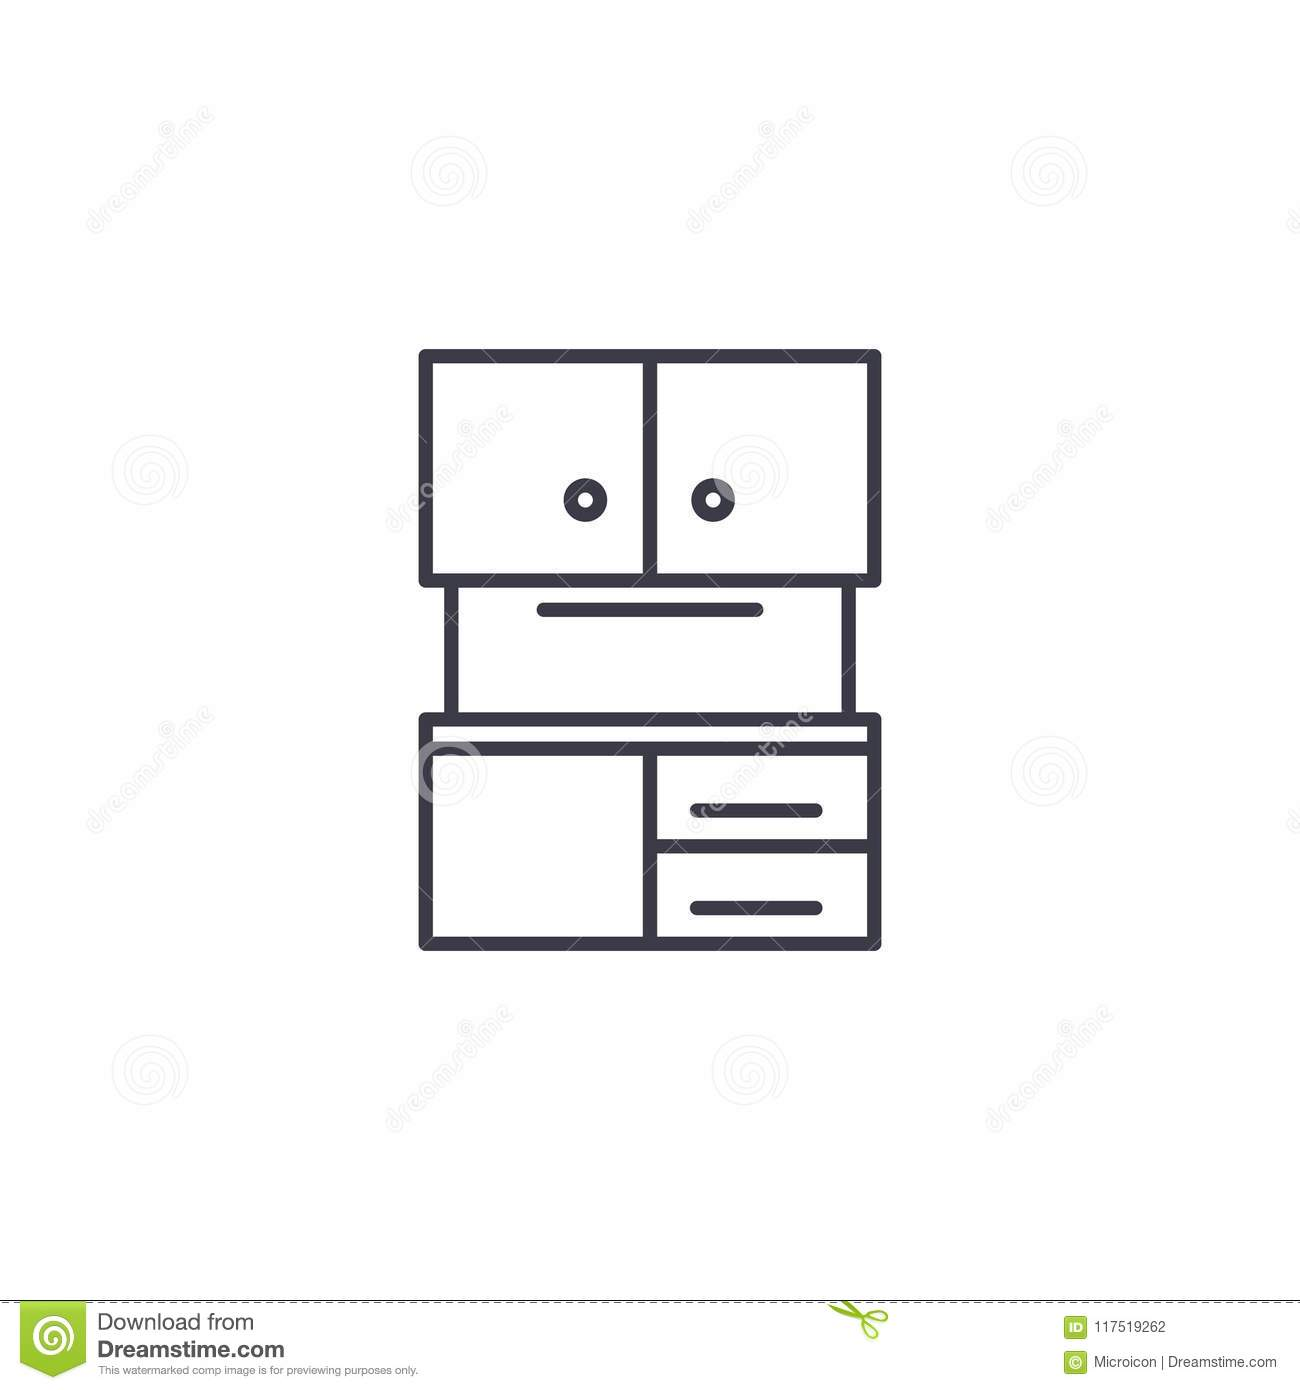 Kitchen Cabinet Linear Icon Concept. Kitchen Cabinet Line